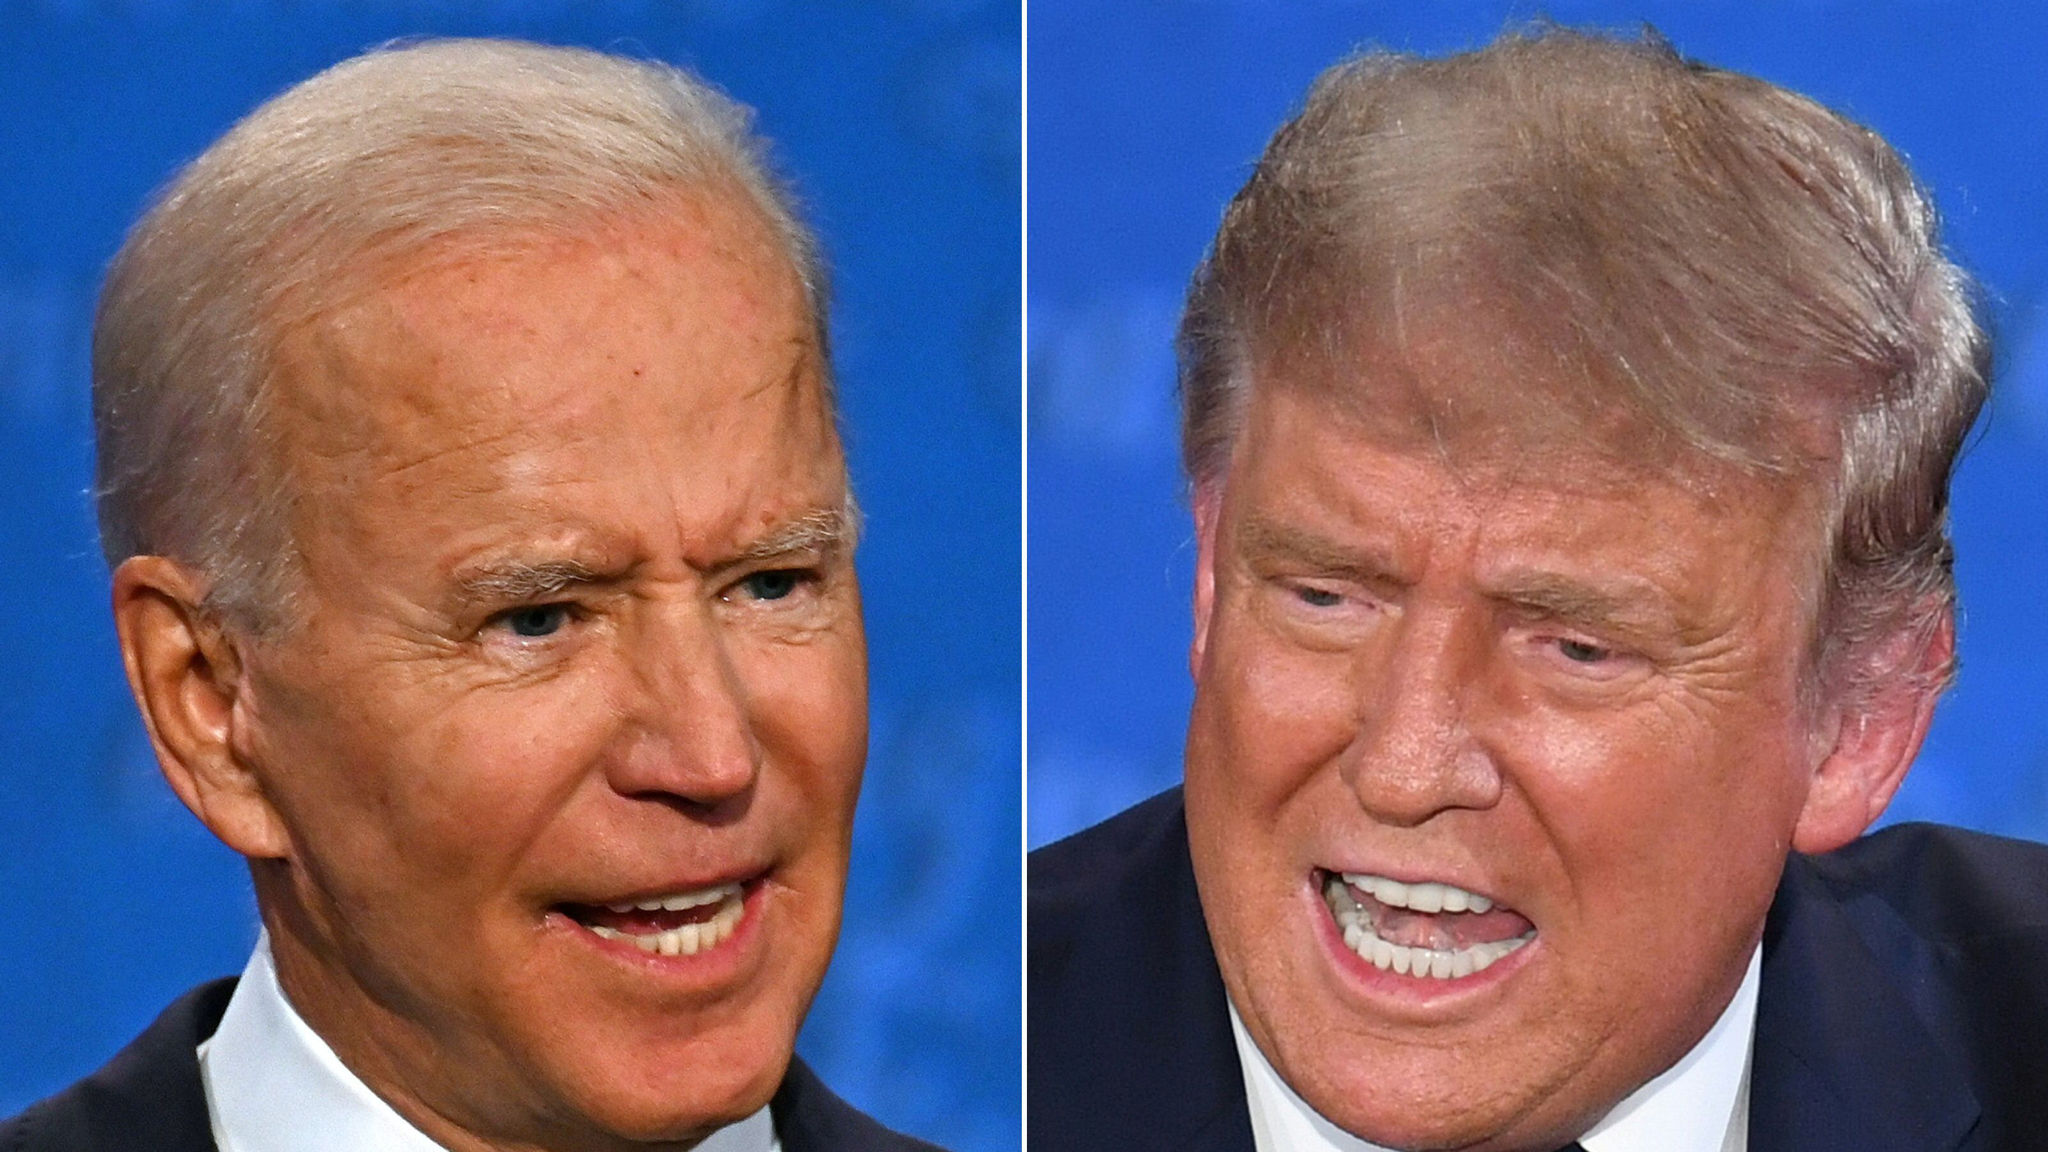 Presidential Debate Our Experts Insights From The Trump Biden Duel As It Happened Financial Times